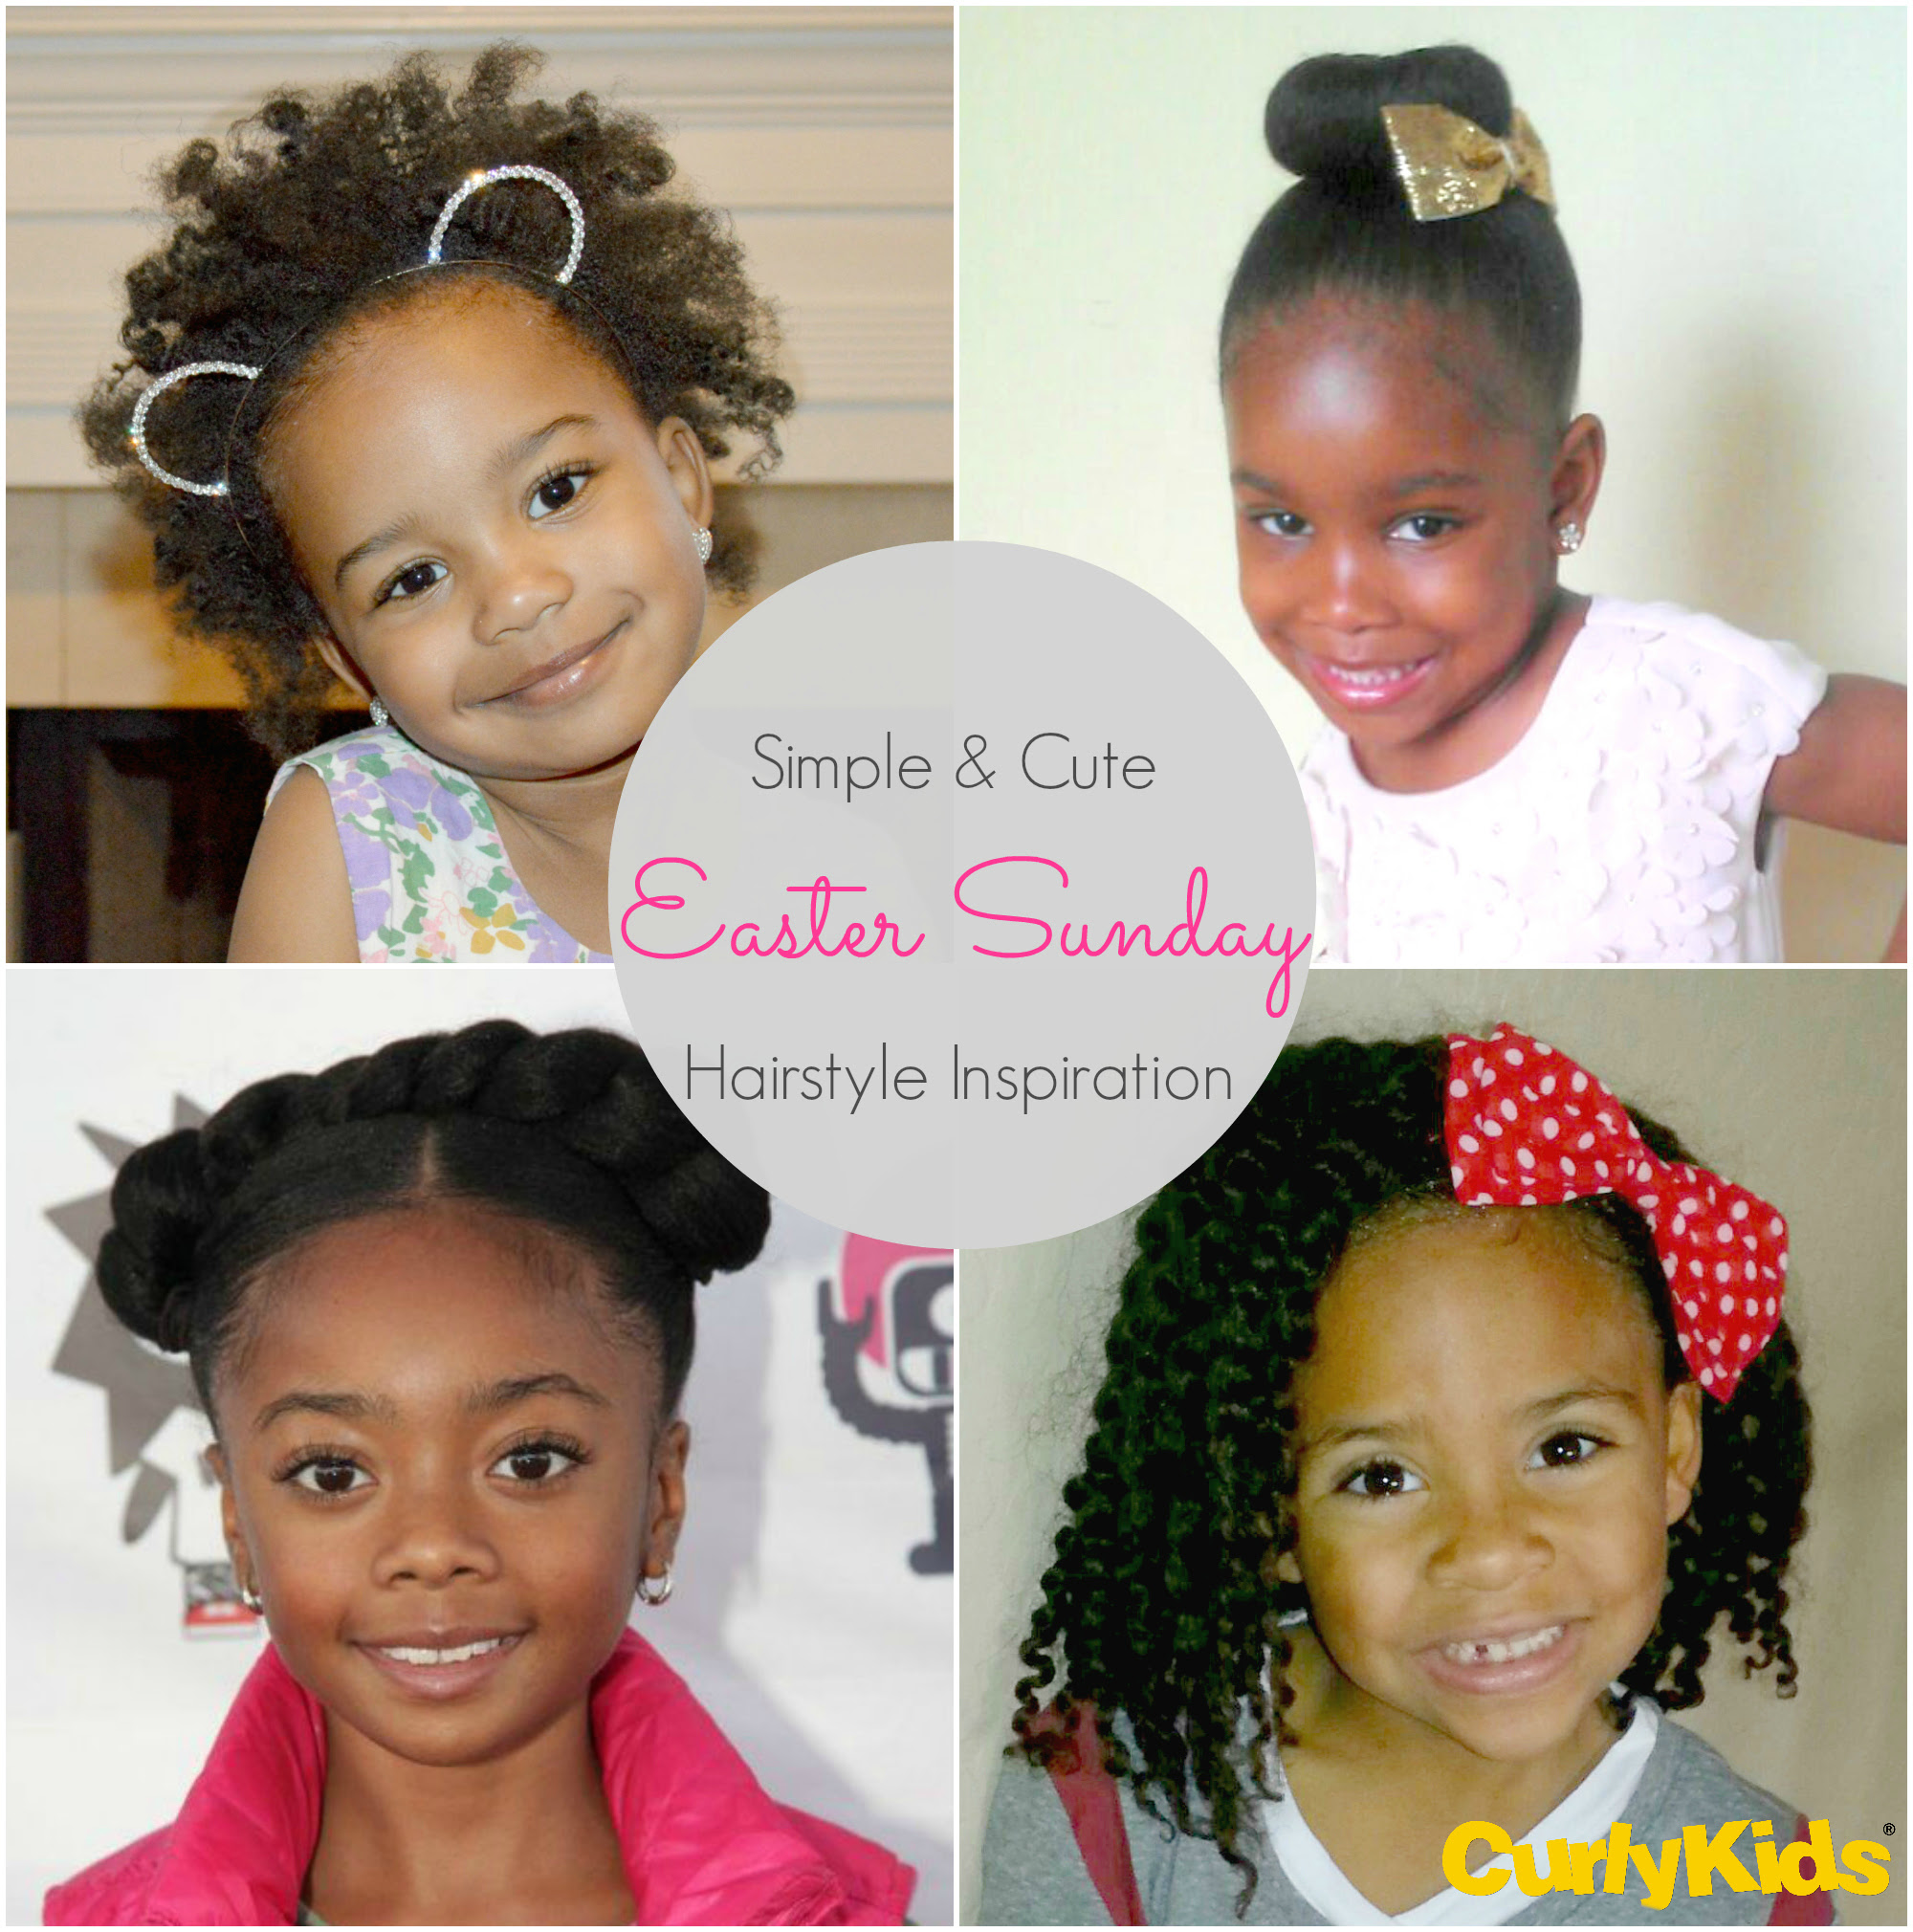 Simple and Cute Easter Sunday Hairstyle Inspiration   CurlyKids Hair Care